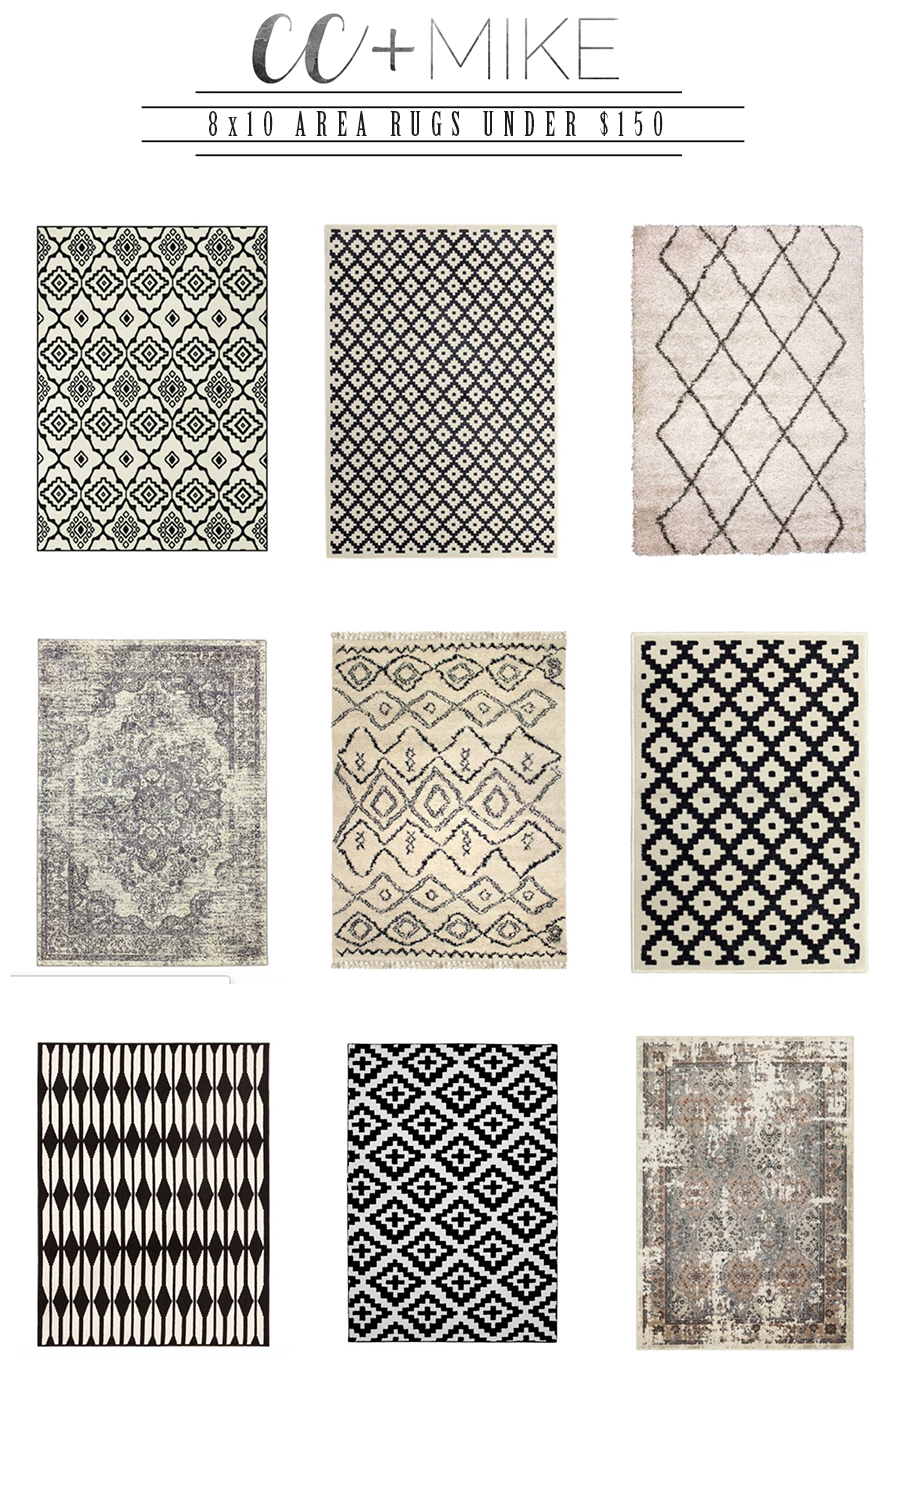 Budget Friendly Holiday Decor from Walmart 8X10 Affordable area rugs under $150 Walmart black and white better homes and gardens